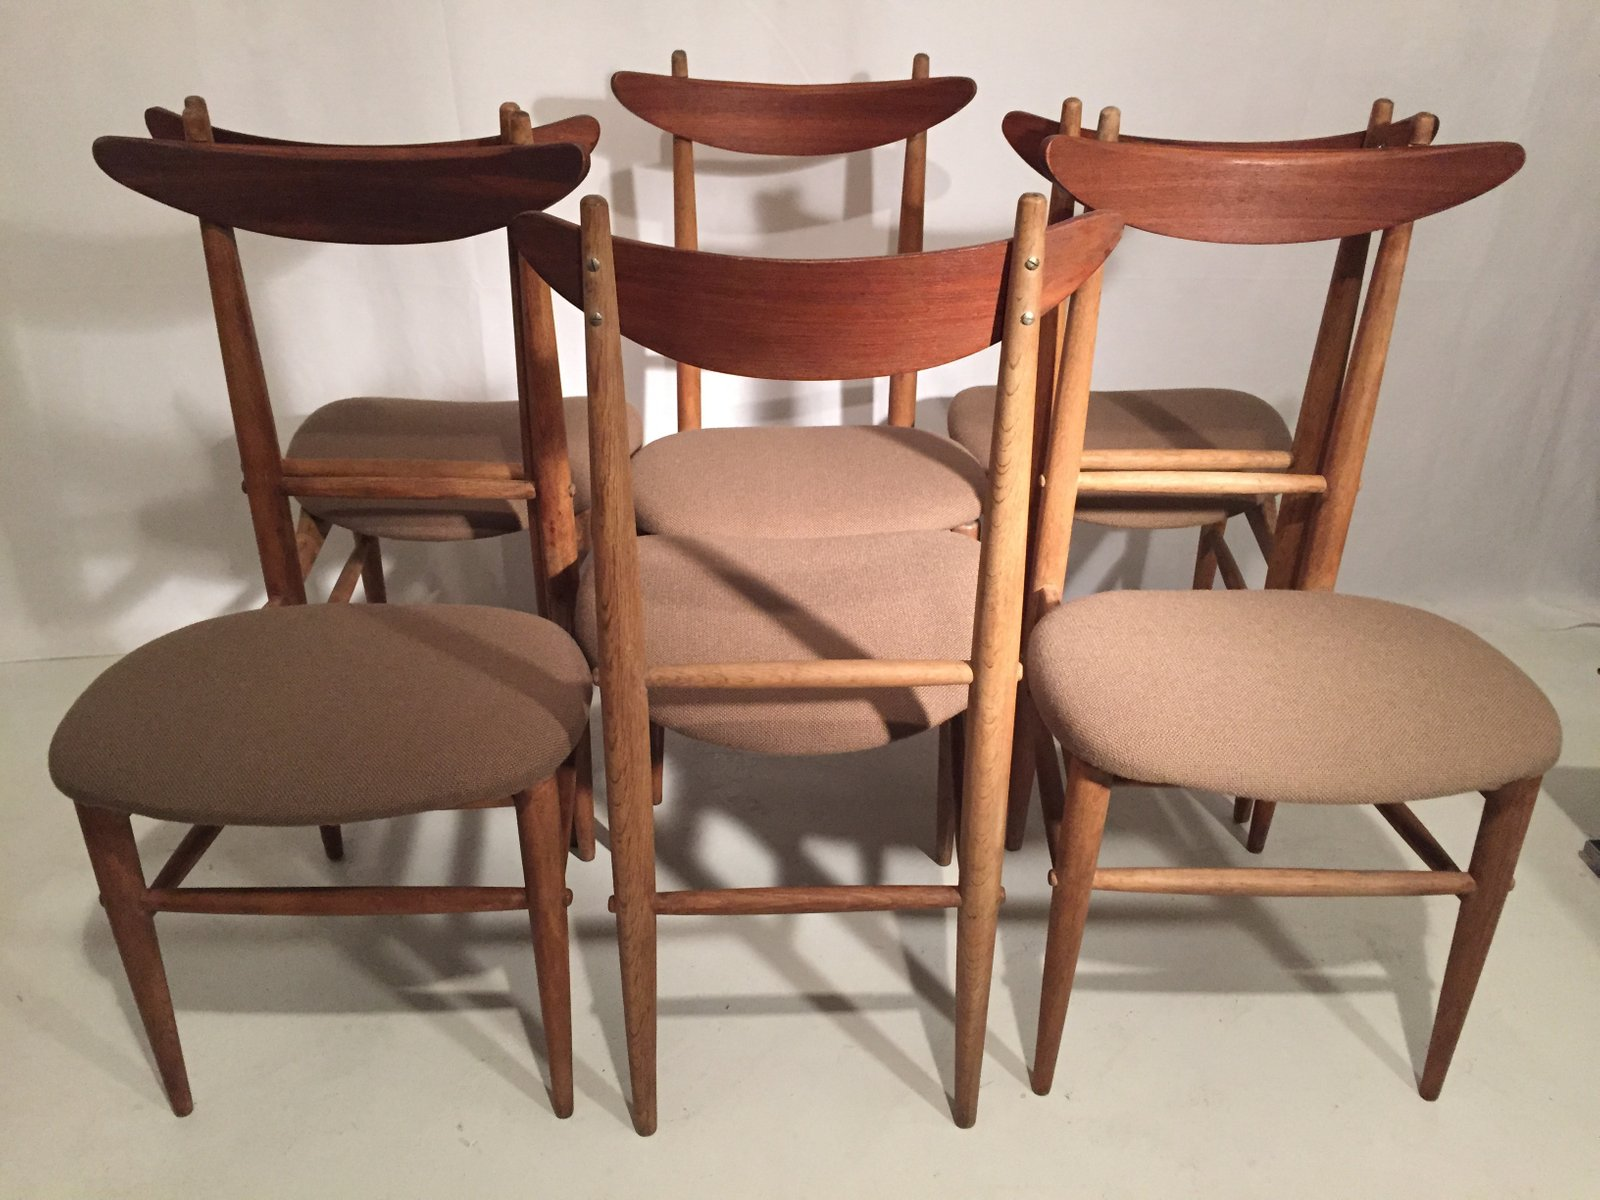 Vintage Teak And Oak Dining Chairs Set Of 6 For Sale At